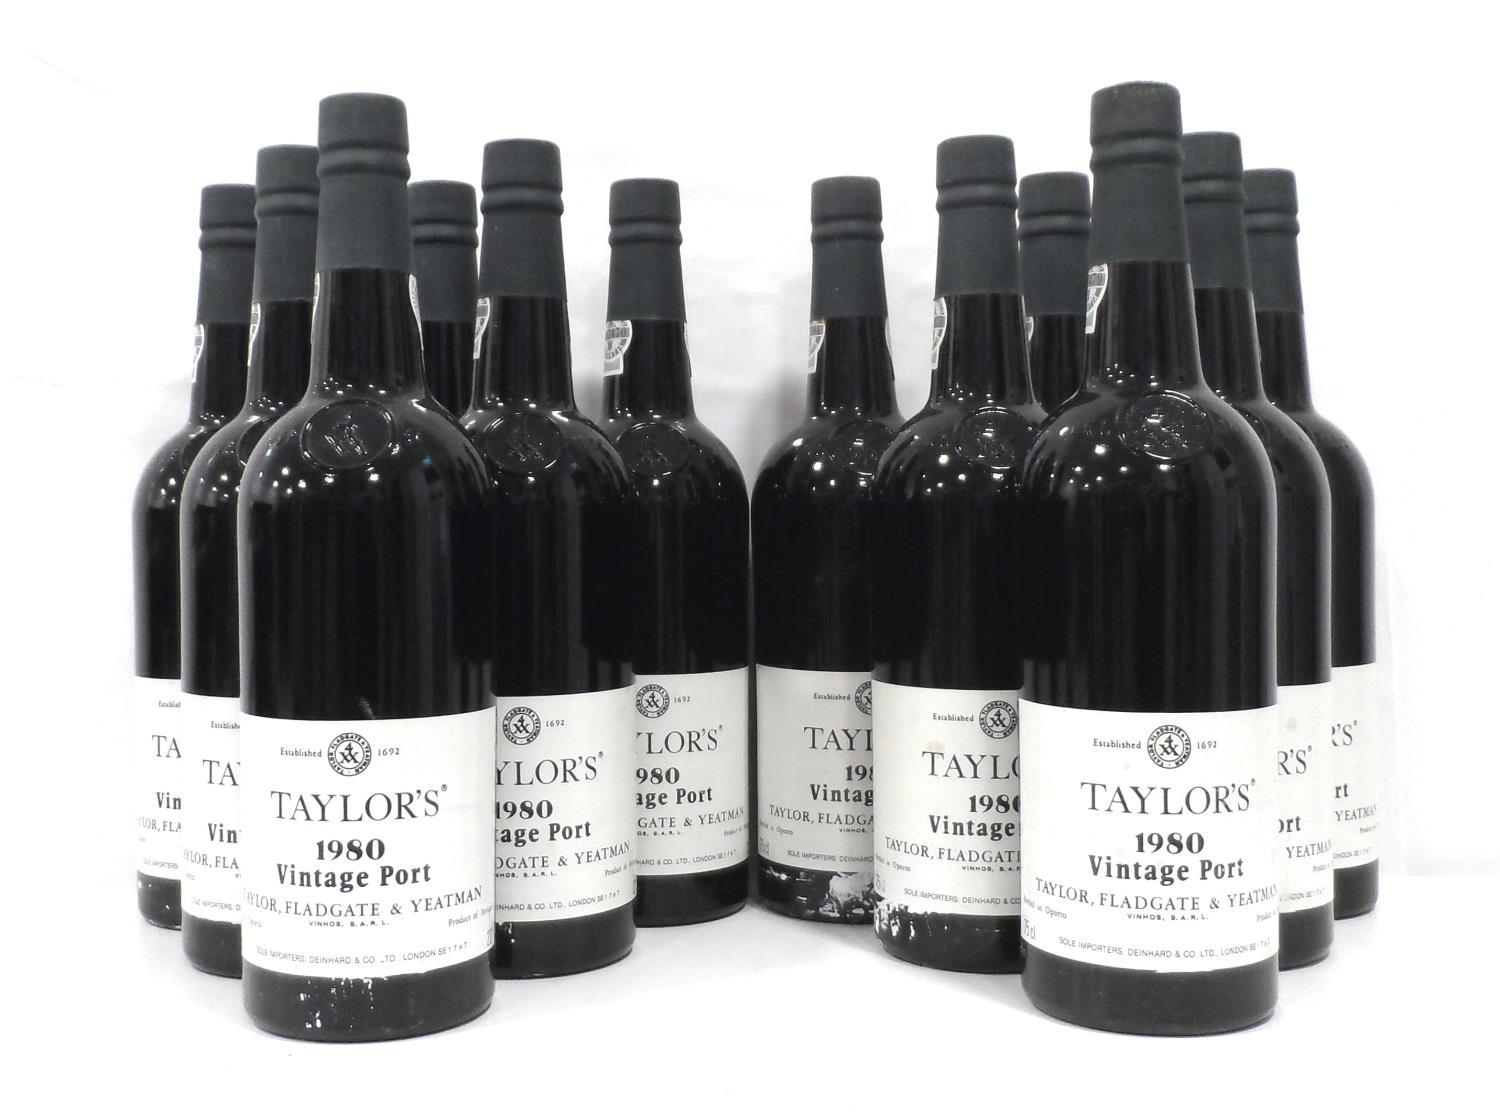 TAYLOR'S 1980 VINTAGE PORT A case of Taylor's 1980 Vintage Port produced in a year that seems to